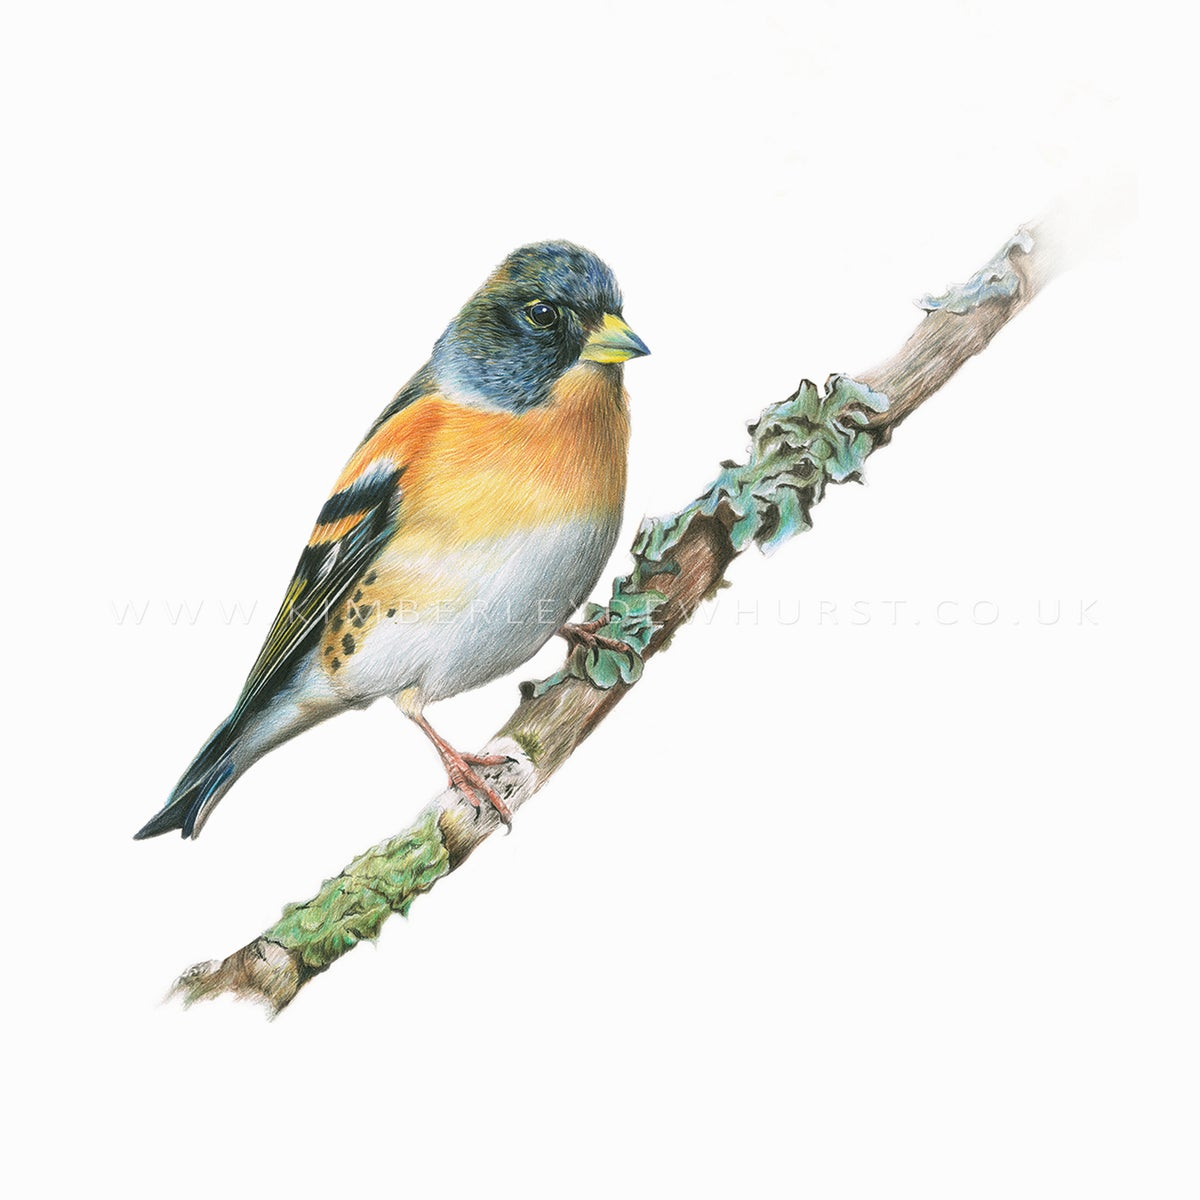 Image of 'BRAMBLING' LIMITED EDITION PRINT